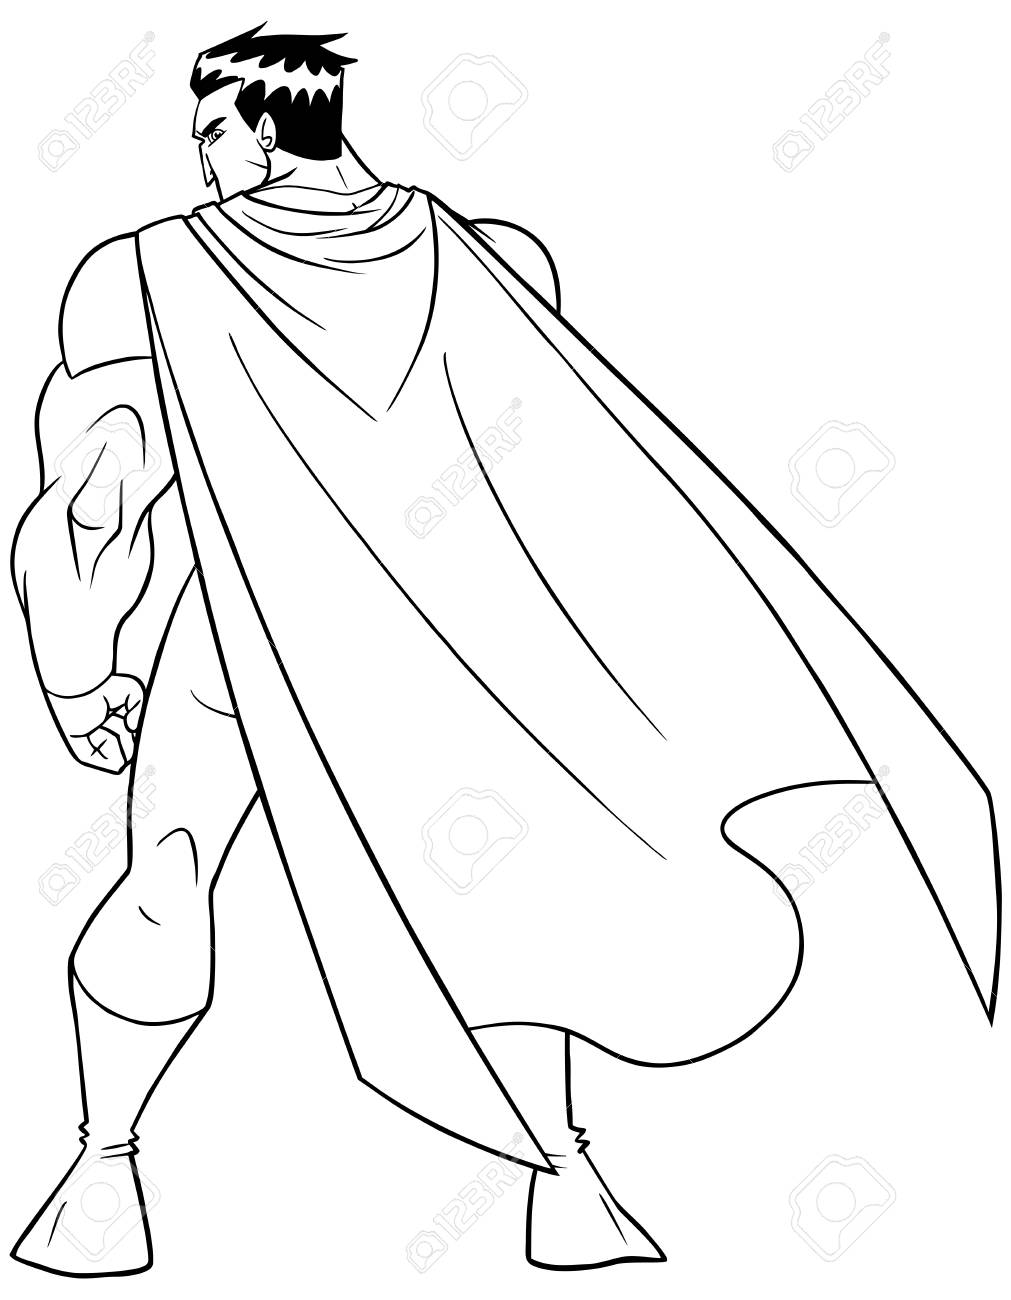 Line art full length rear view of a powerful superhero with cape